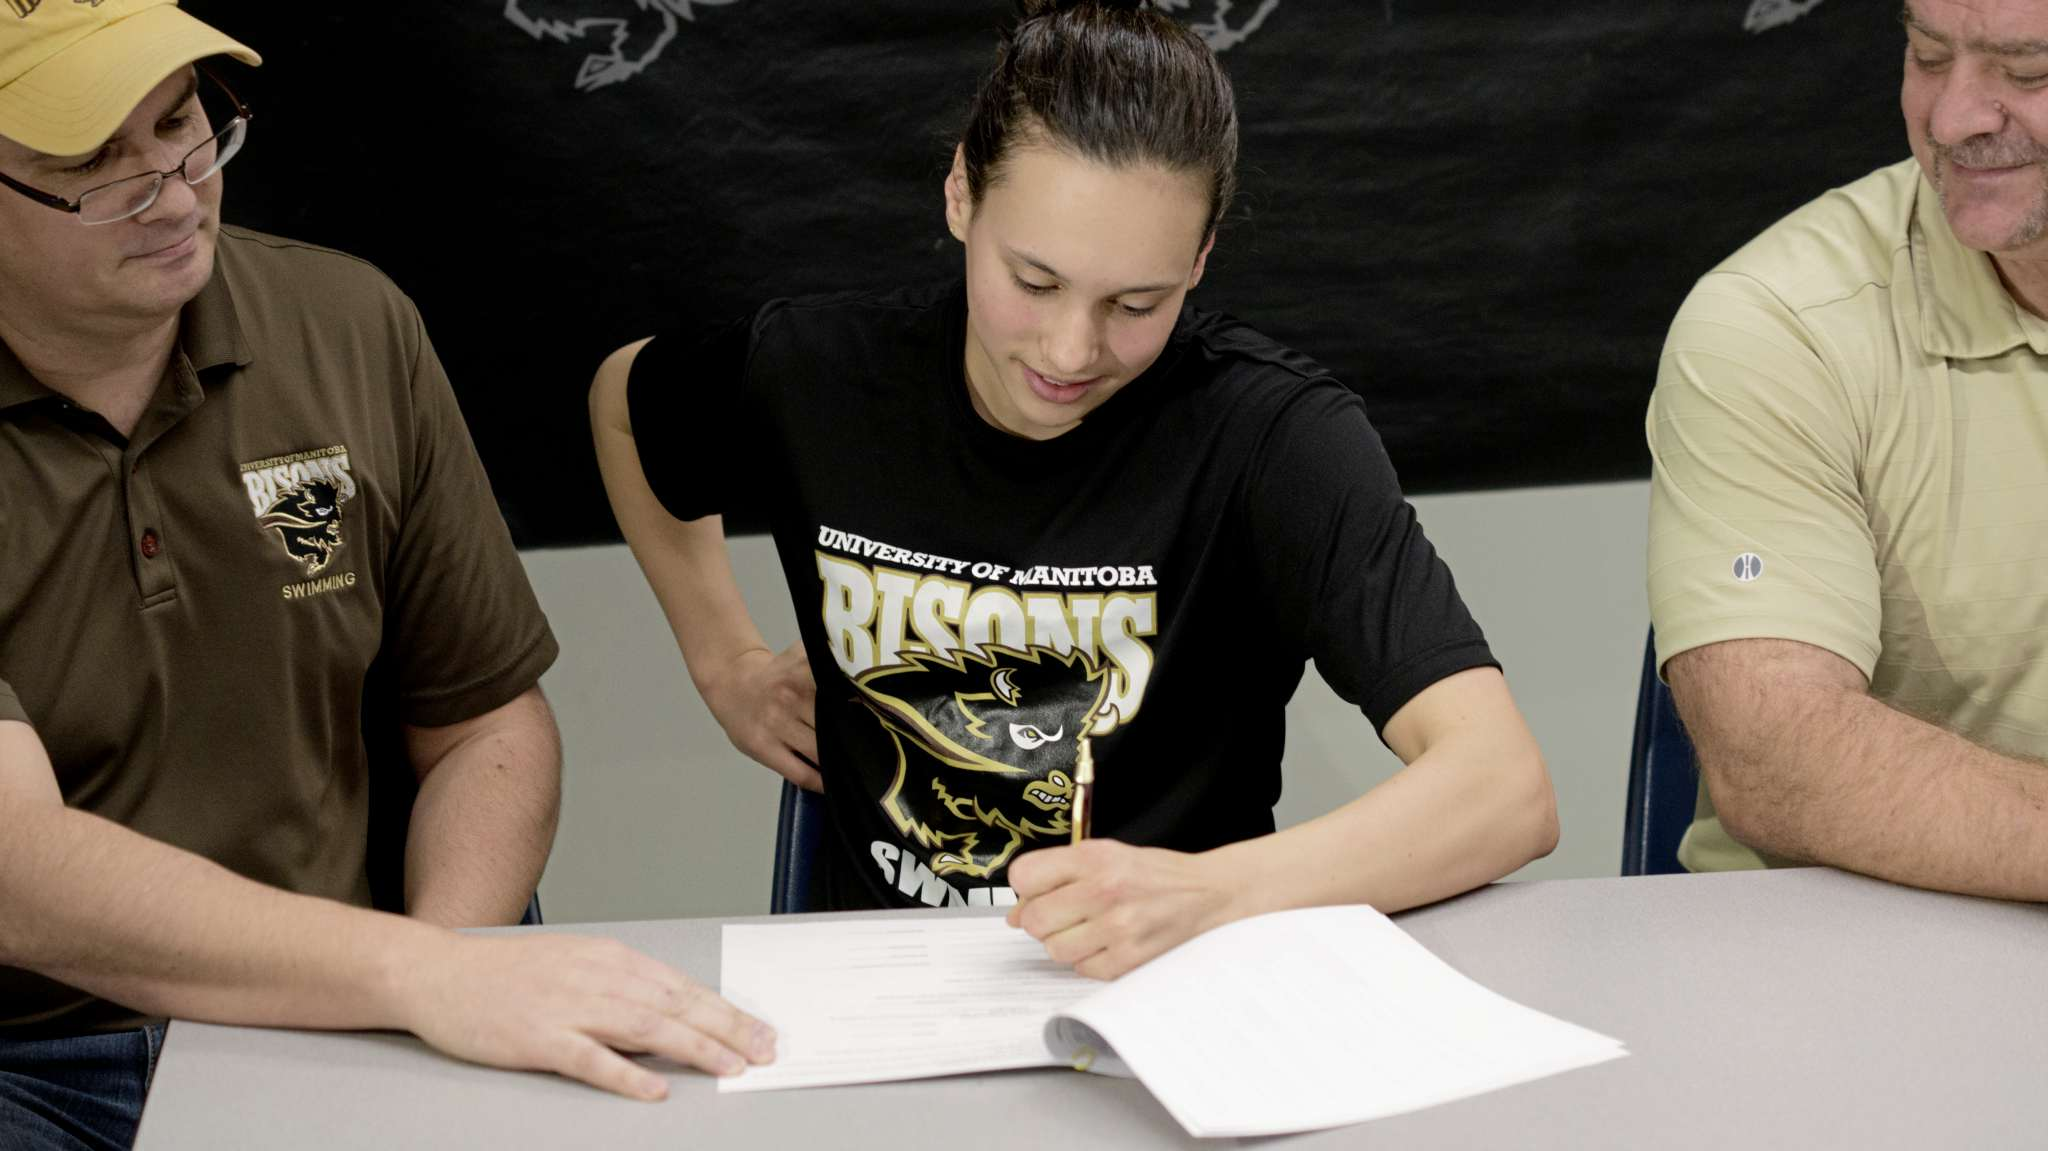 Kelsey Wog, 17, signs a contract with the University of Manitoba Bisons swim team on Dec. 8.